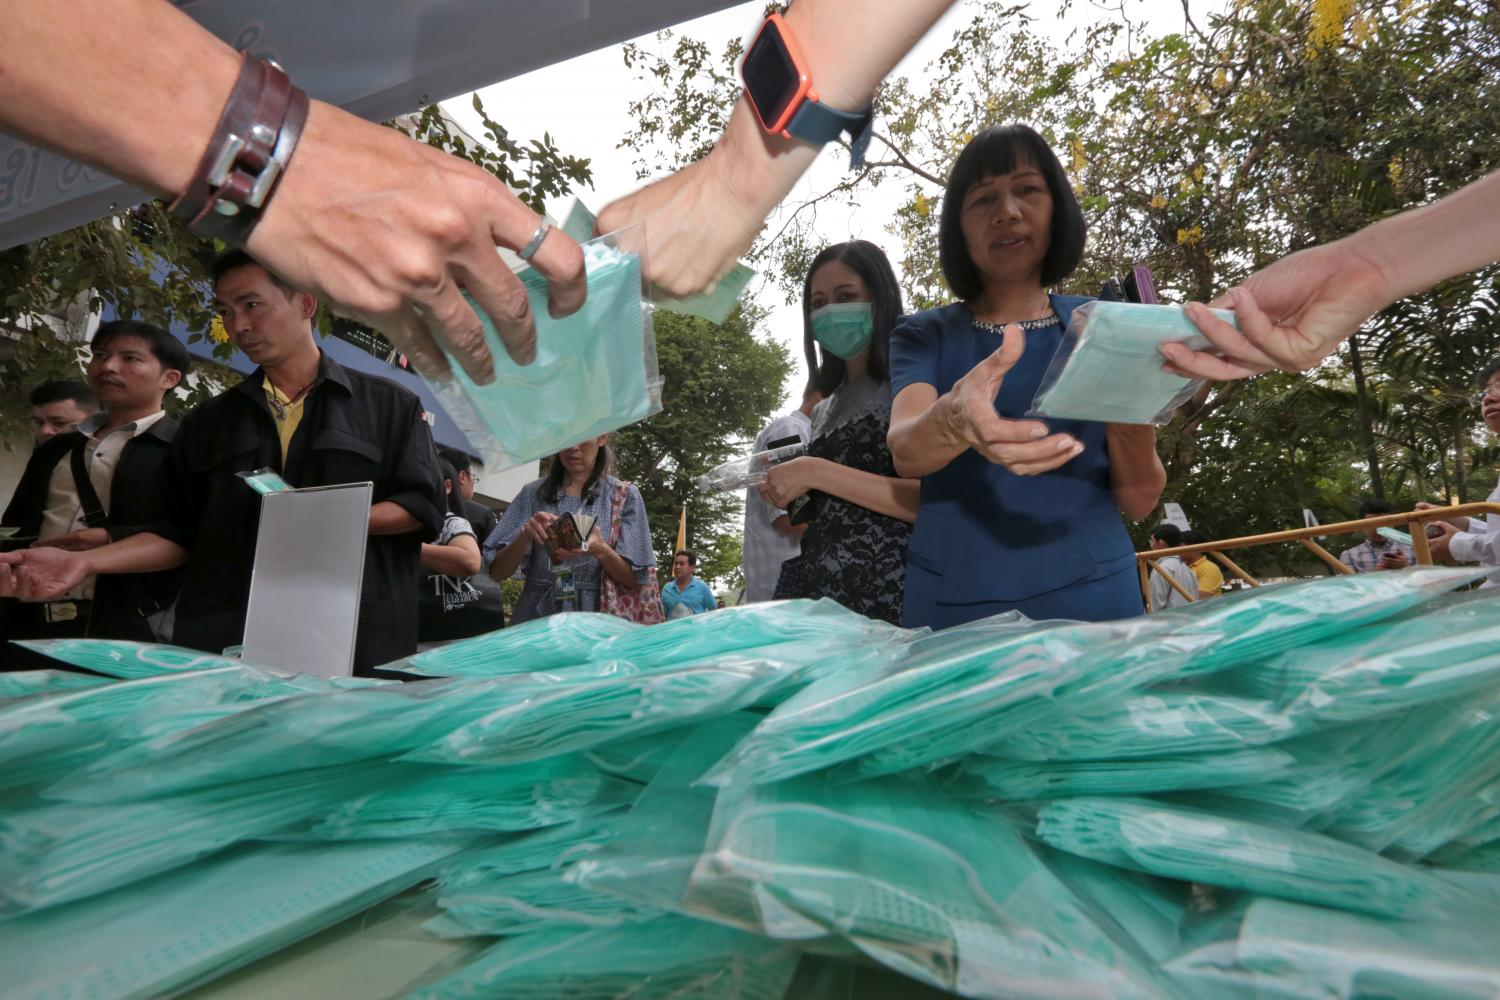 People buy face masks at one of two makeshift stalls set up near Government House yesterday morning. As many as 20,000 masks were reportedly snapped up in half an hour. Sales of the masks — a box of 10 for 25 baht — were limited to one set per person. (Photo by Chanat Katanyu)